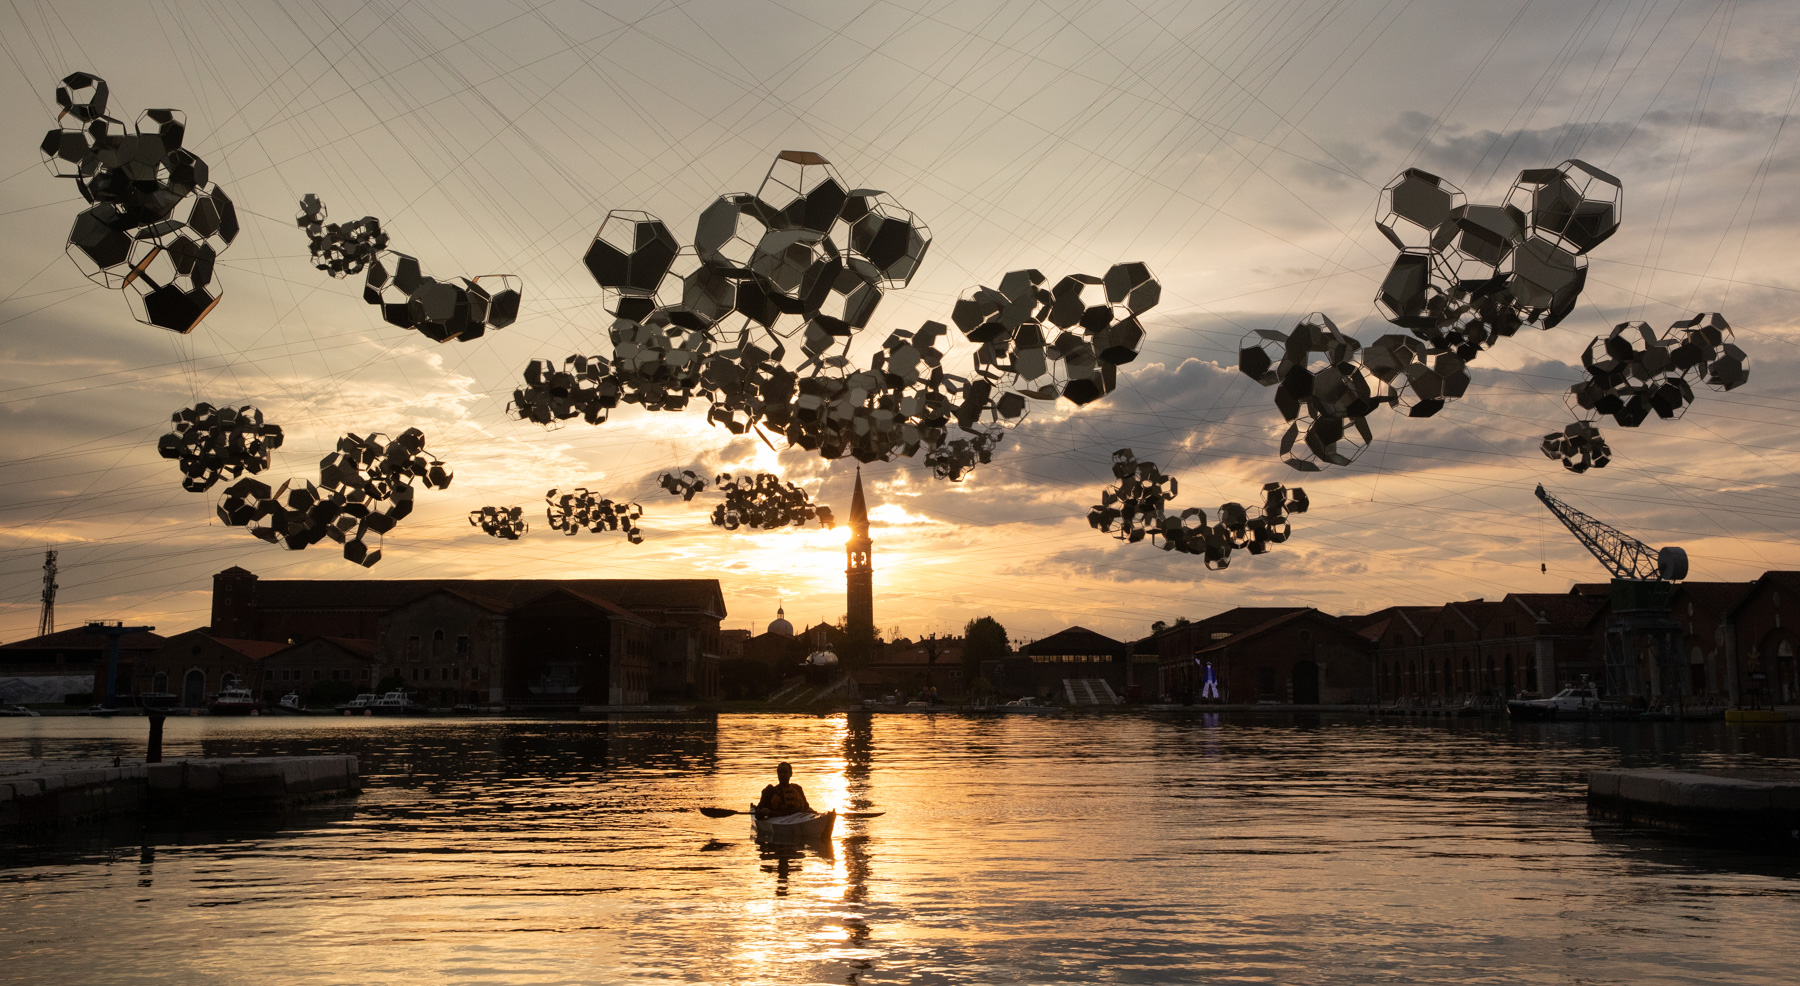 Tomás Saraceno Aero(s)cene: When breath becomes air, when atmospheres become the movement for a post fossil fuel era against carbon-capitalist clouds, 2019 Installation view of On the Disappearance of Clouds, 2019 at May You Live In Interesting Times, Biennale Arte 2019, curated by Ralph Rugoff.